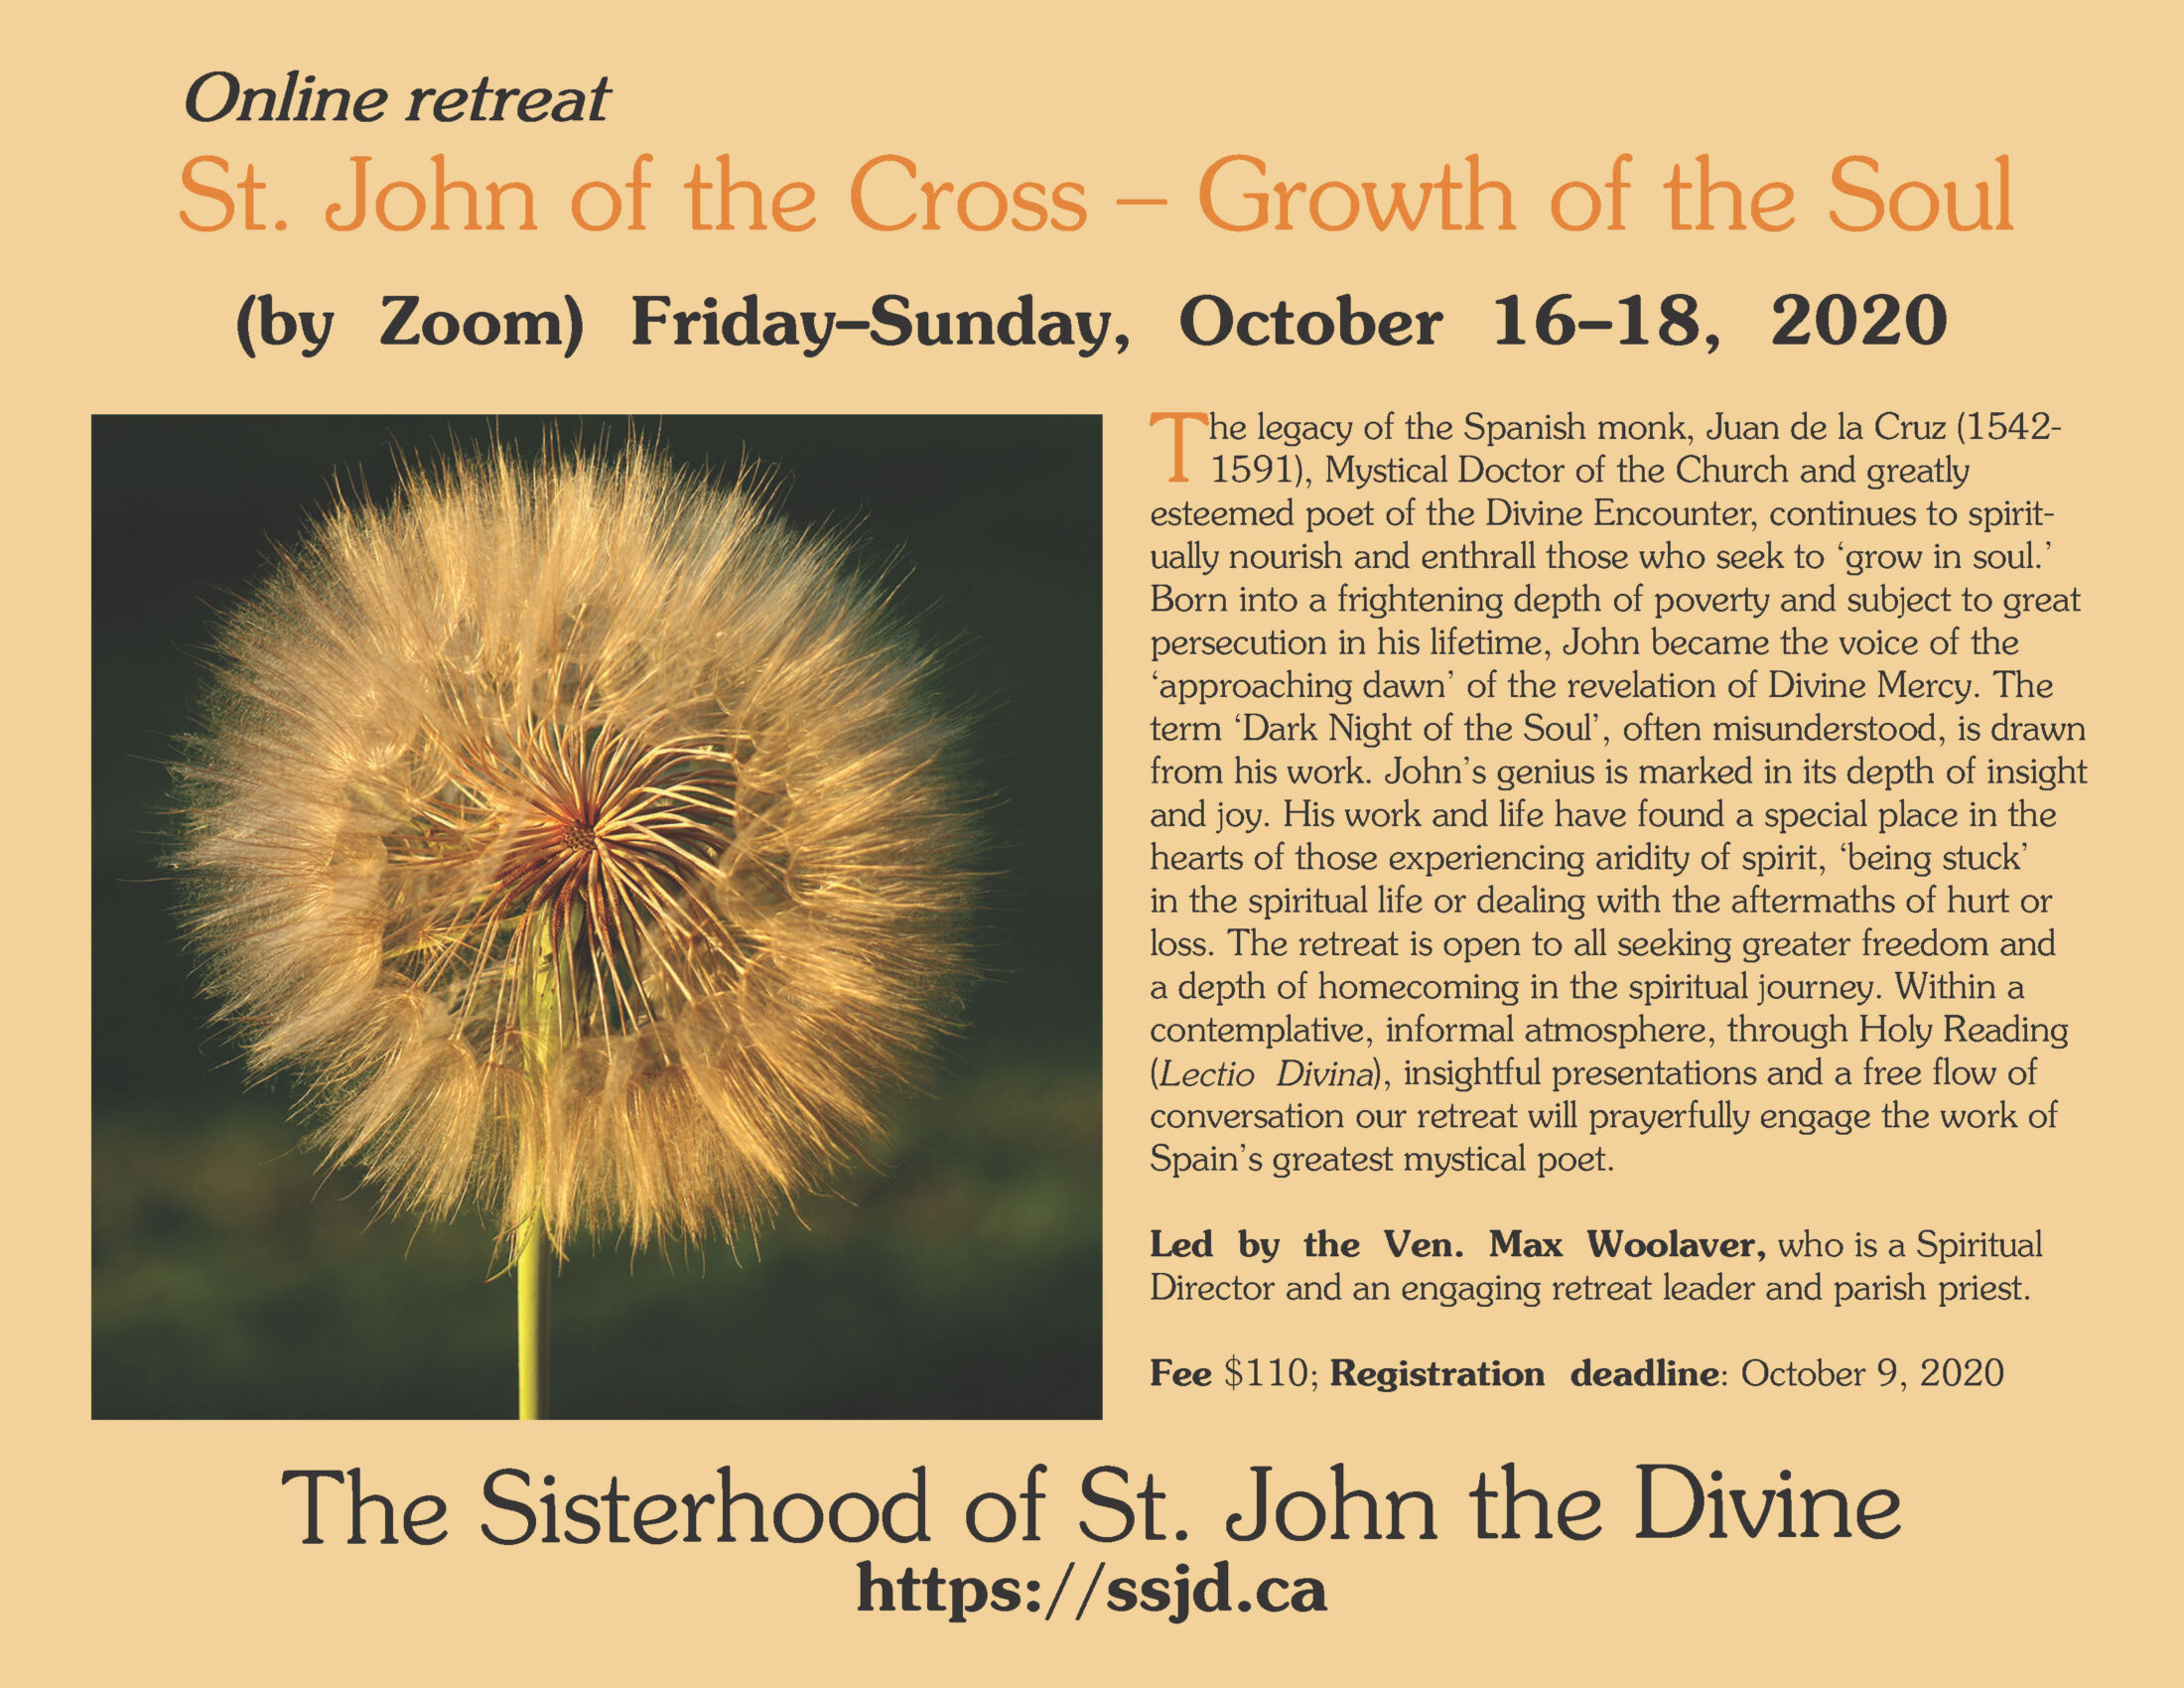 St. John of the Cross – Growth of the Soul